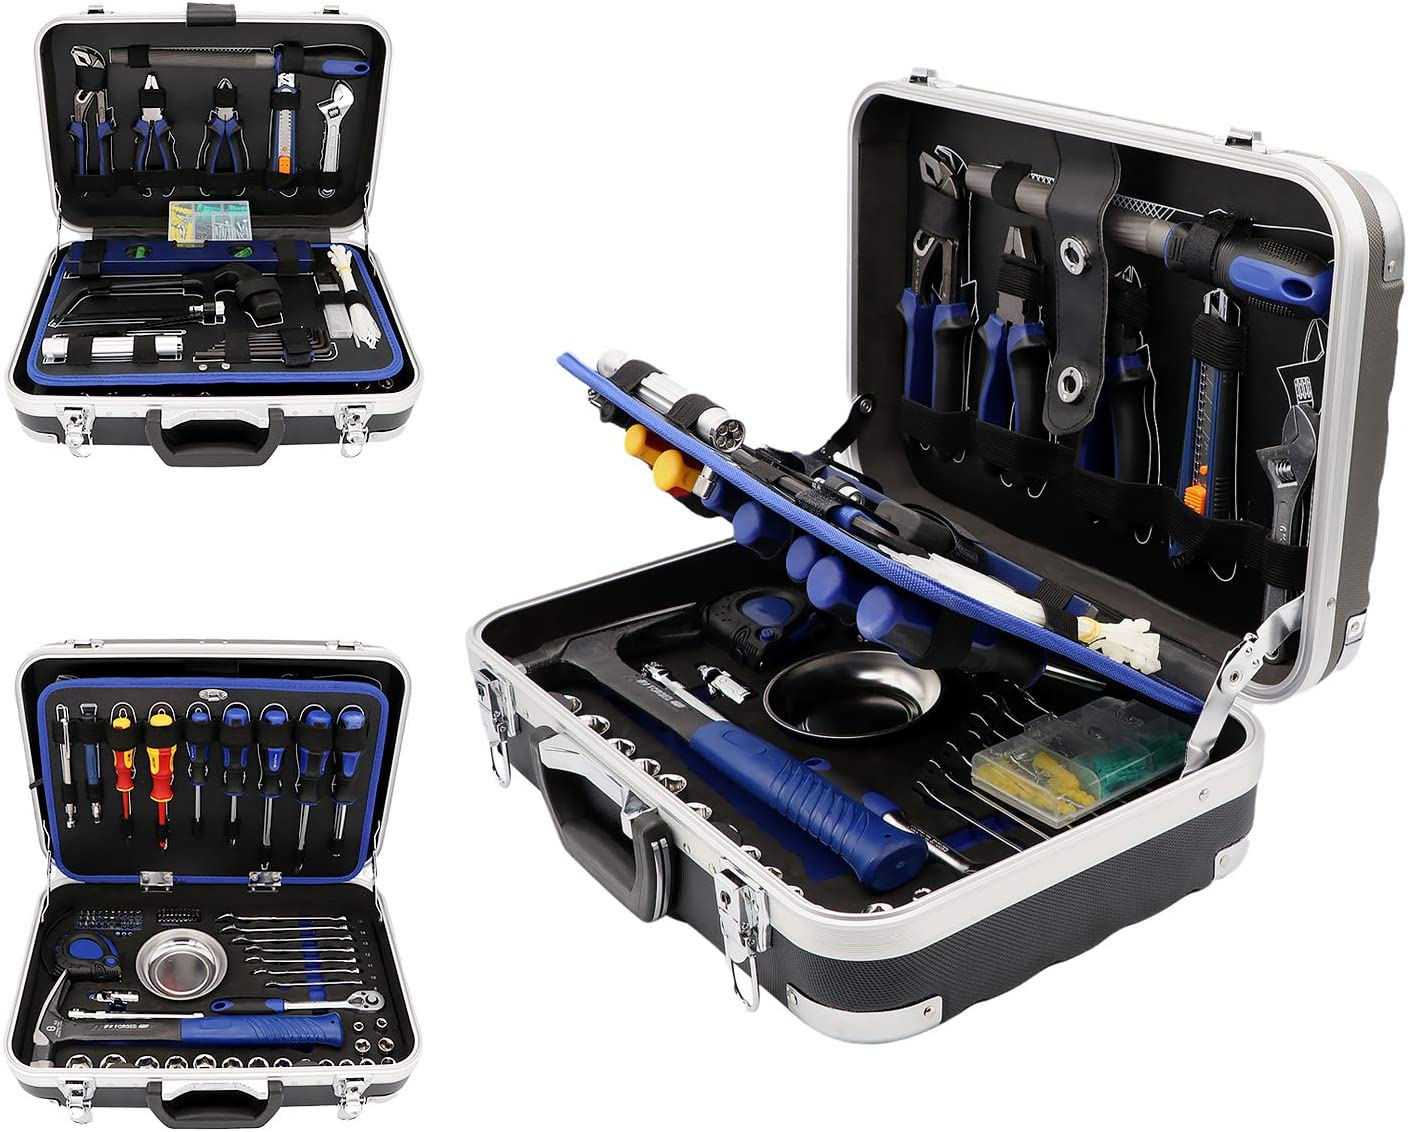 192-Piece Household Tool Kit - GETUHAND Premium Home Repair Tool Set, General Hand Tool Kit Mixed Tool Set with Heavy Duty Aluminum Hard Case